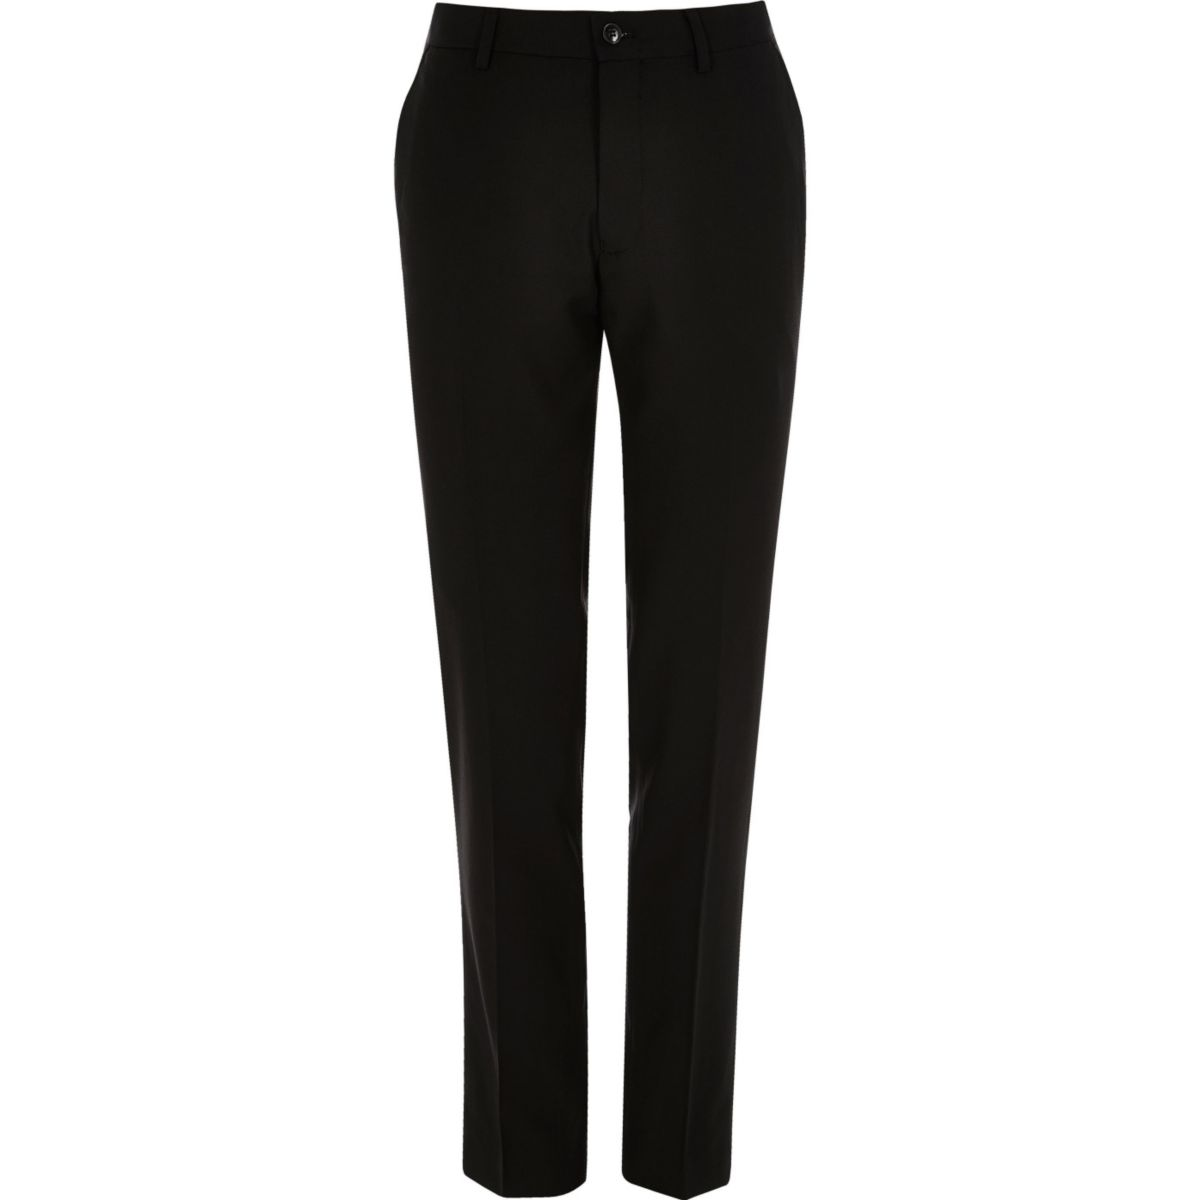 Black Vito slim suit trousers